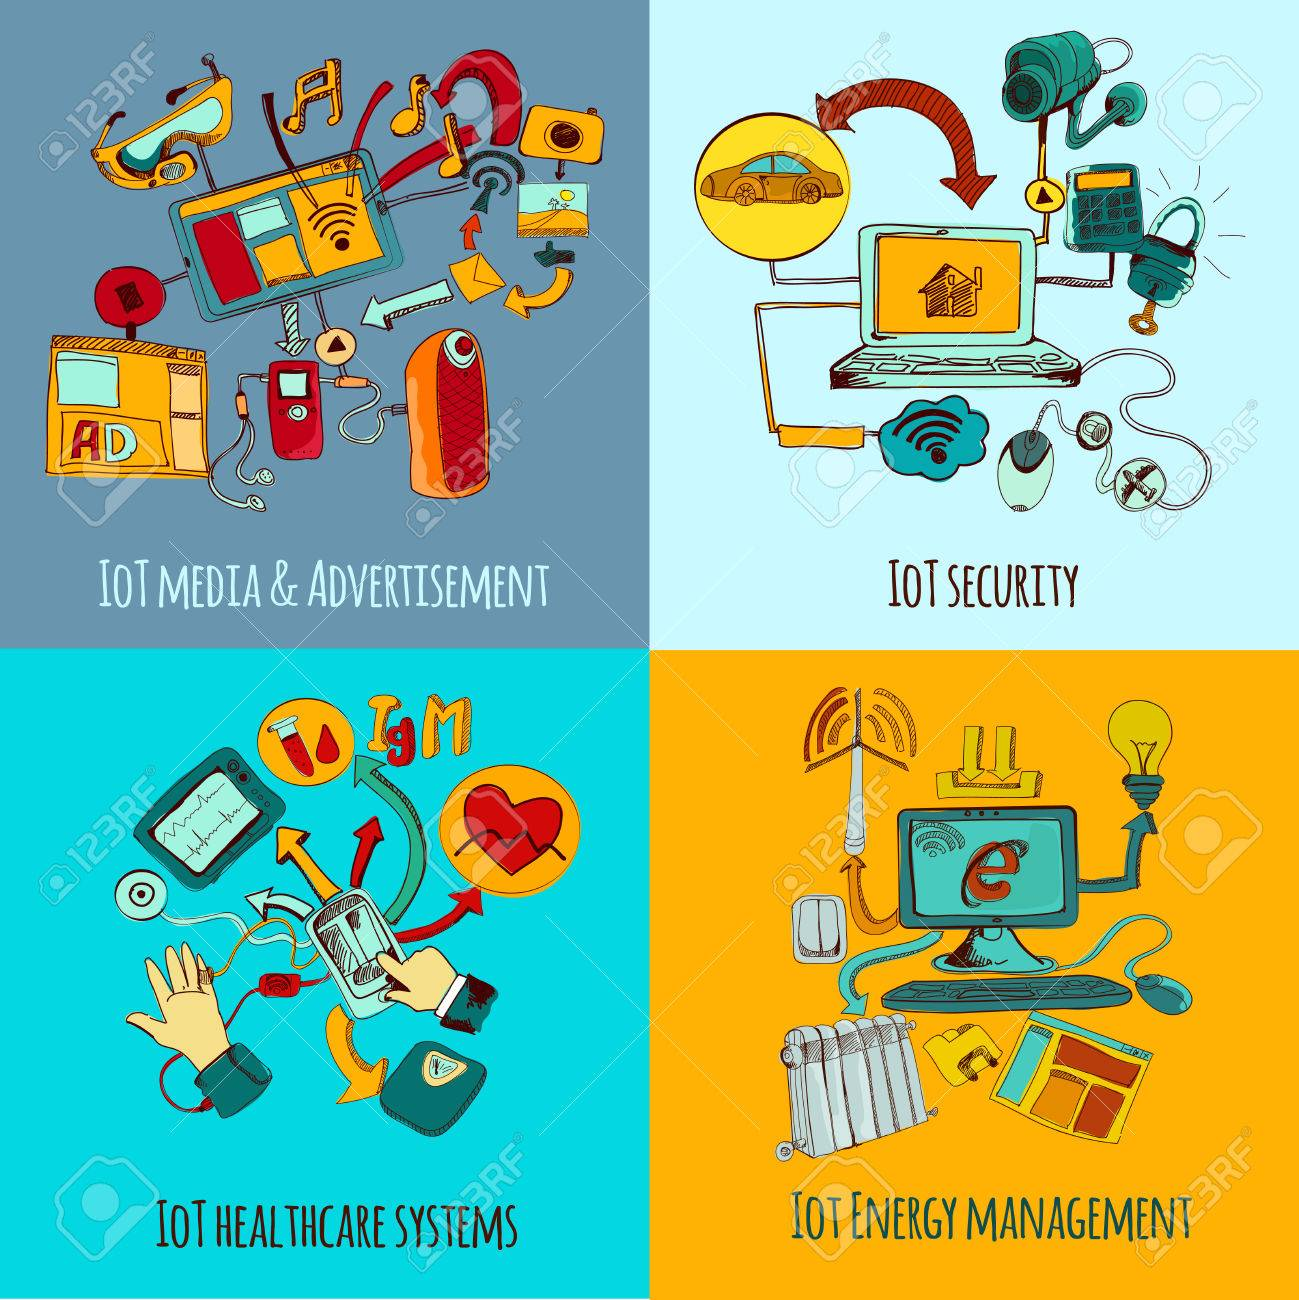 Internet Of Things Design Concept Set With Media Advertisement Security Healthcare Systems Energy Management Sketch Icons